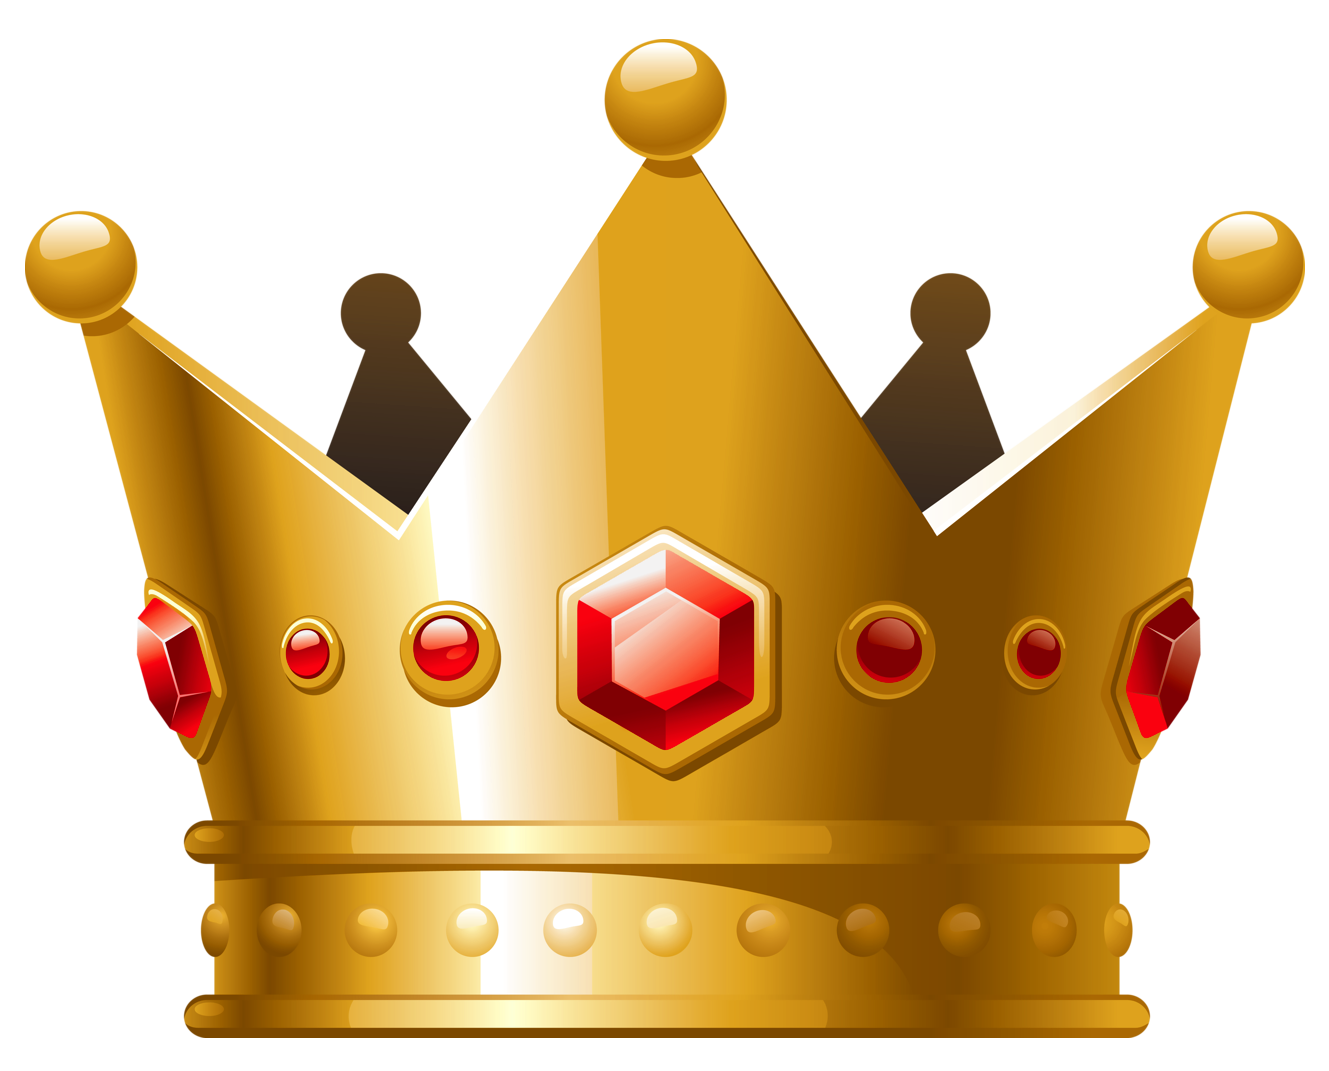 Crown clipart lion. Transparent image with background